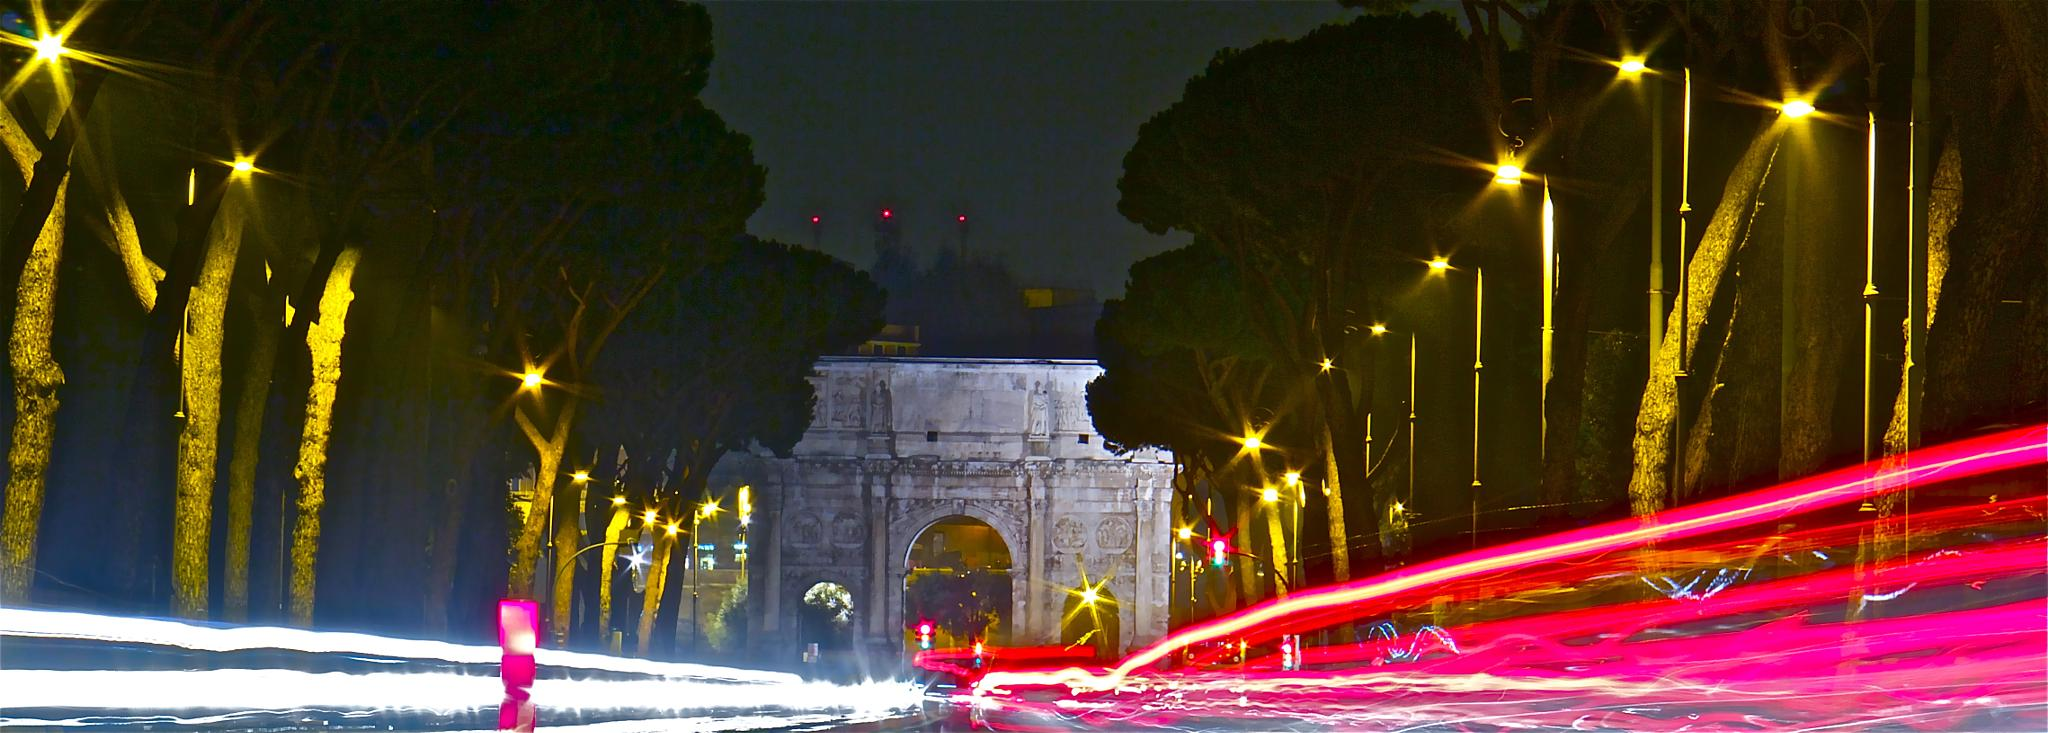 Untitled by enrico.coppola.10